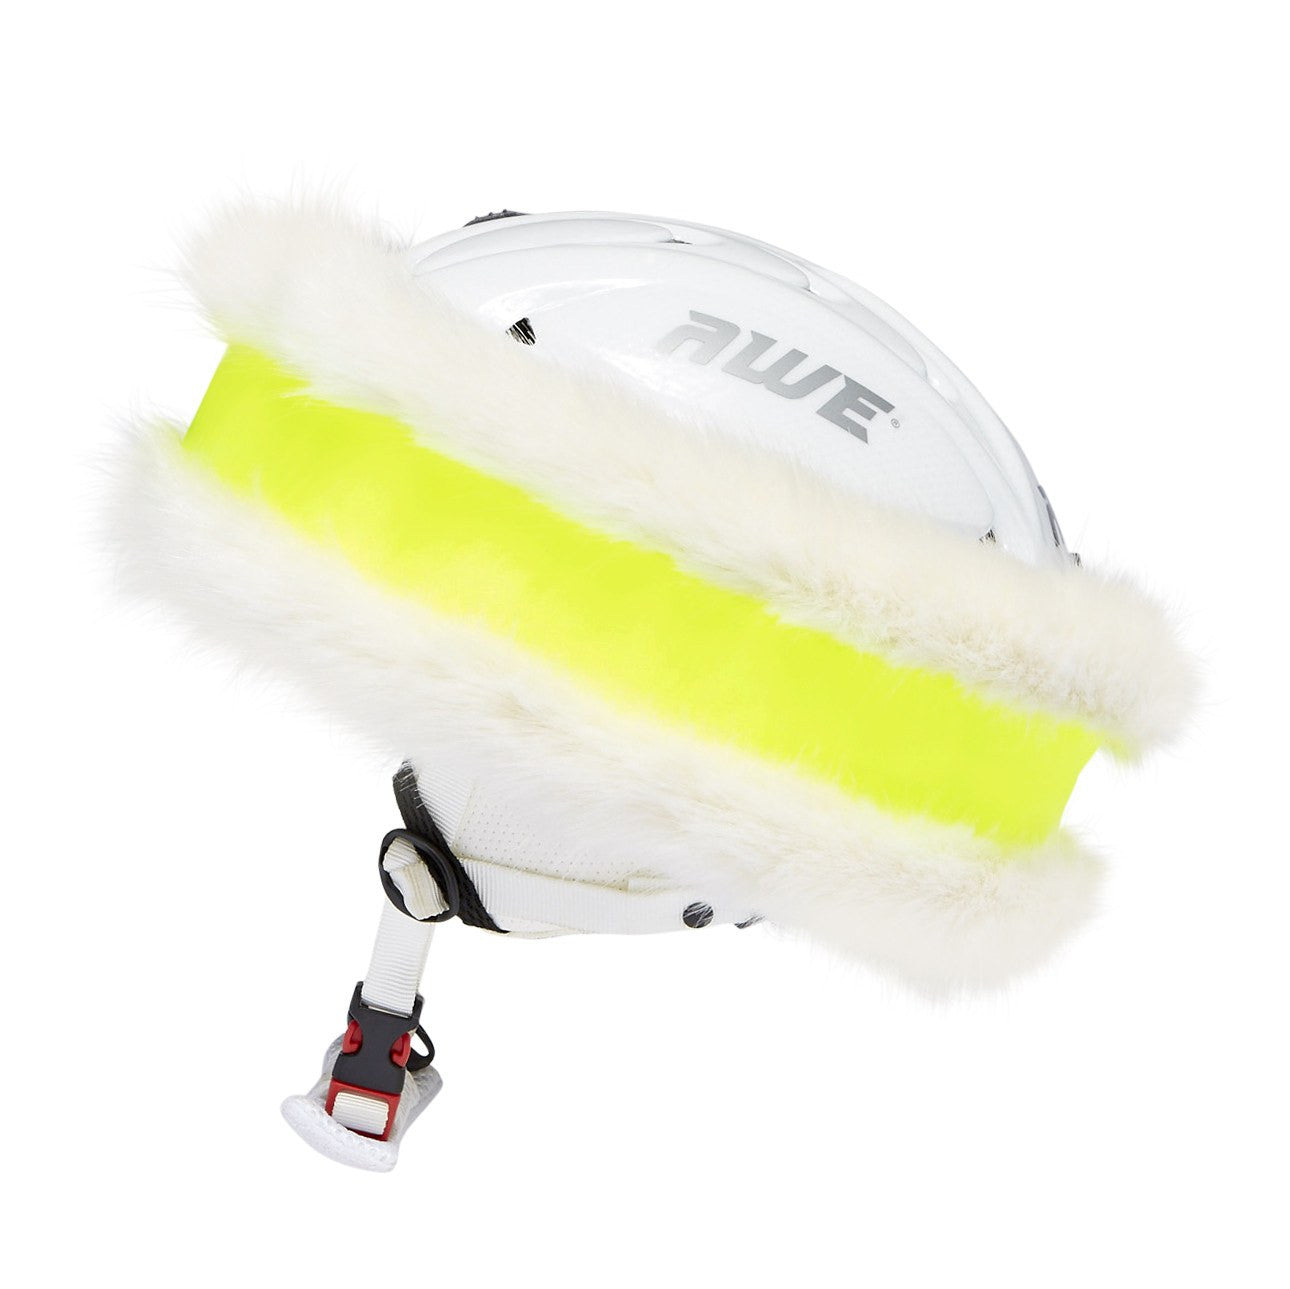 Neon Yellow and White 'Snowband' - Annabel Brocks